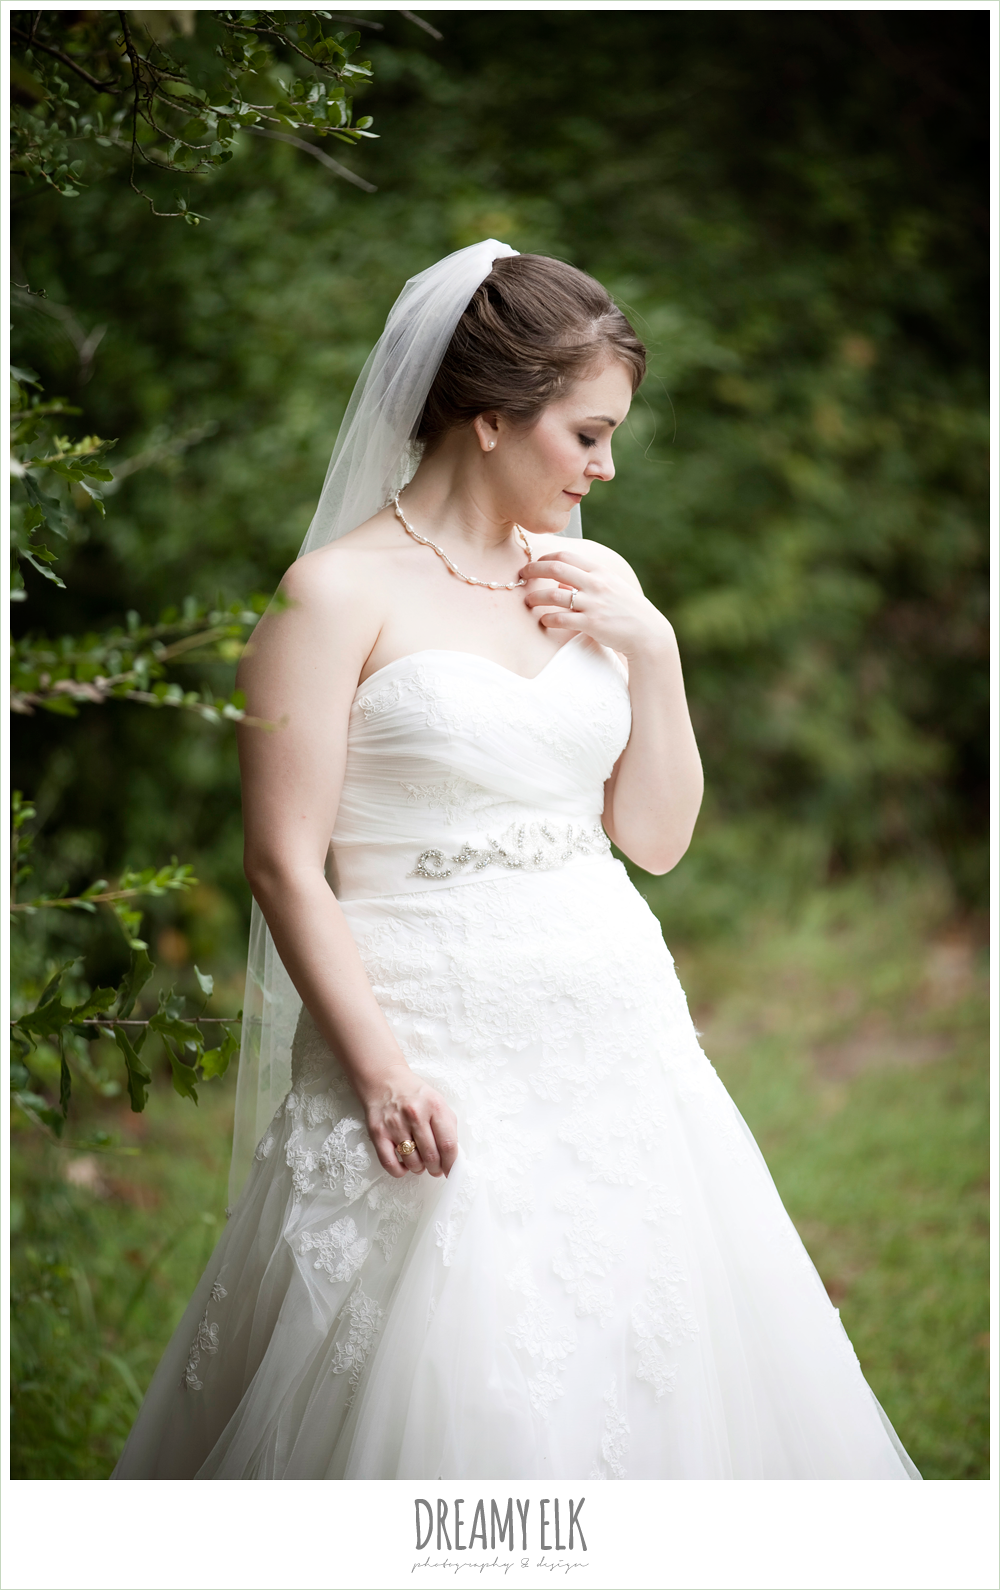 sweetheart strapless lace wedding dress, beaded veil & belt